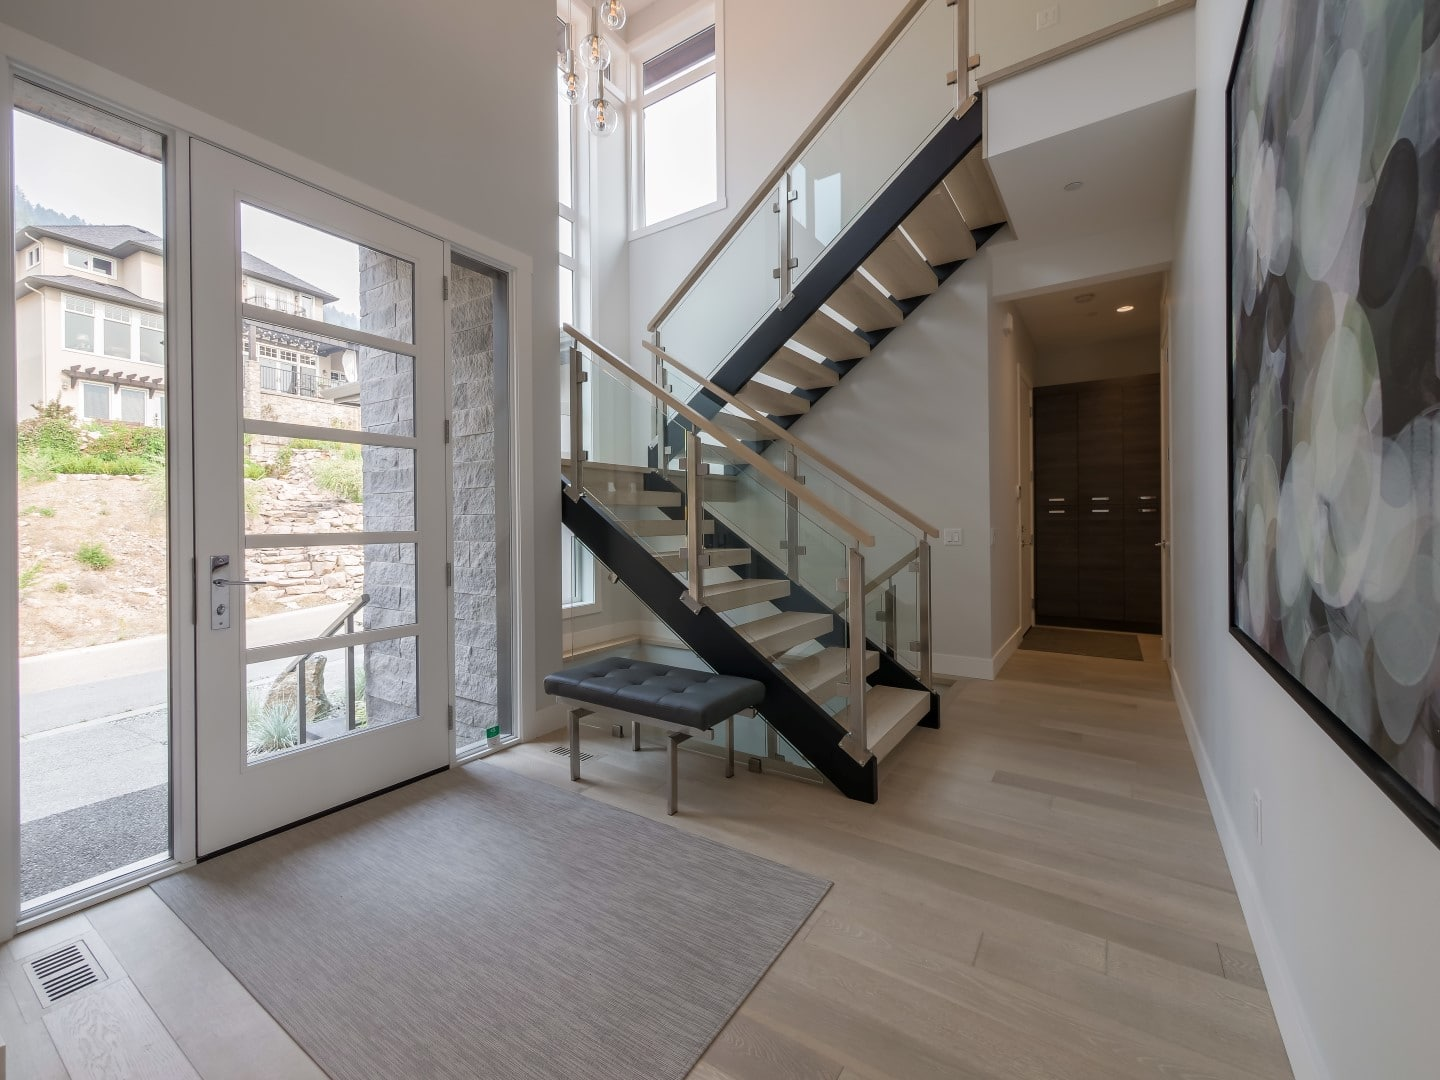 Crystal Waters - Stein (22) - Entrance and open staircase